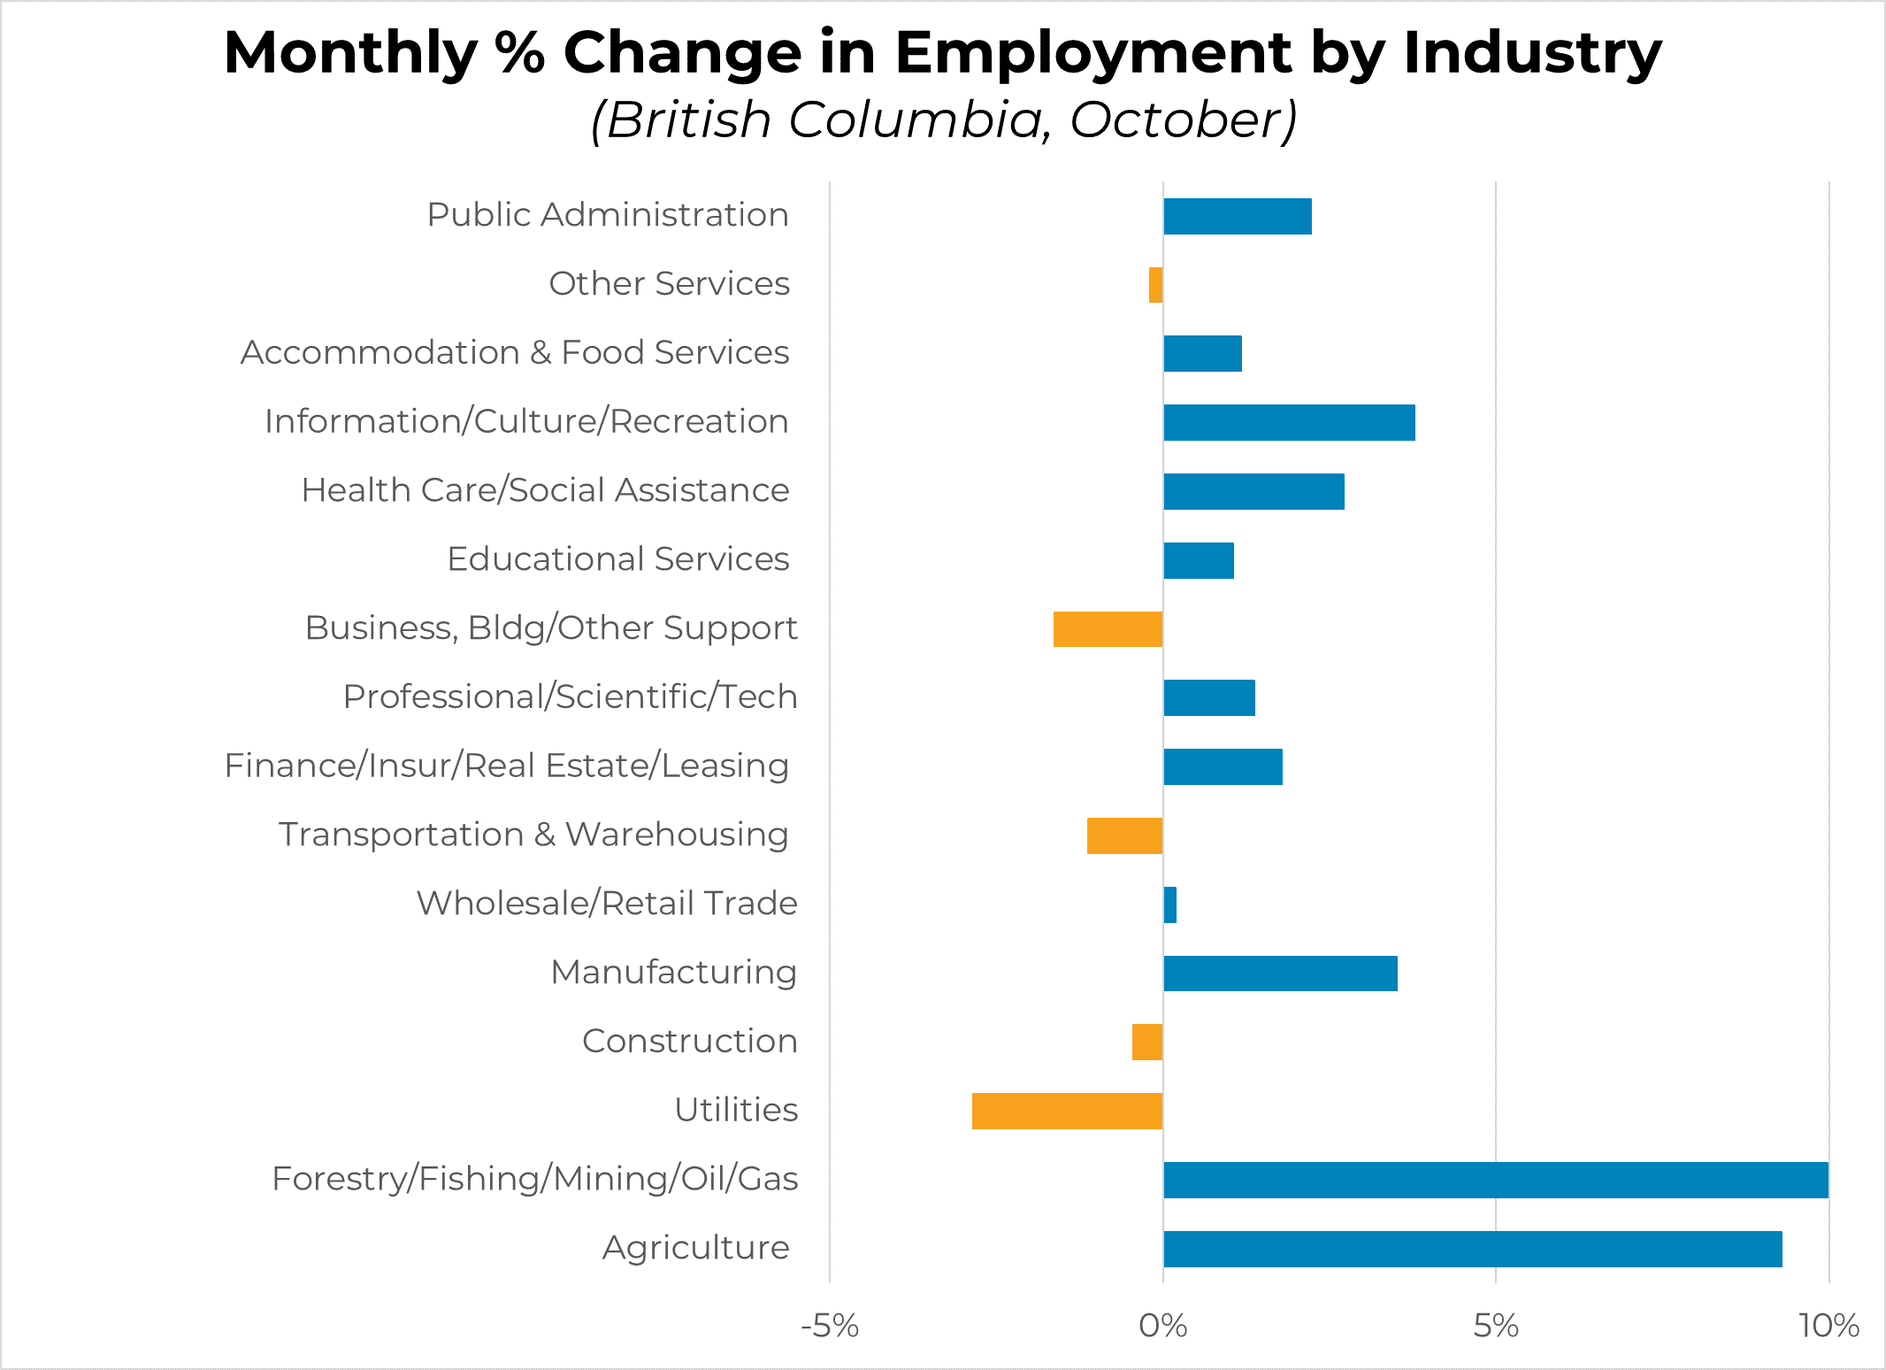 Monthly Change - October 2020 - By Industry